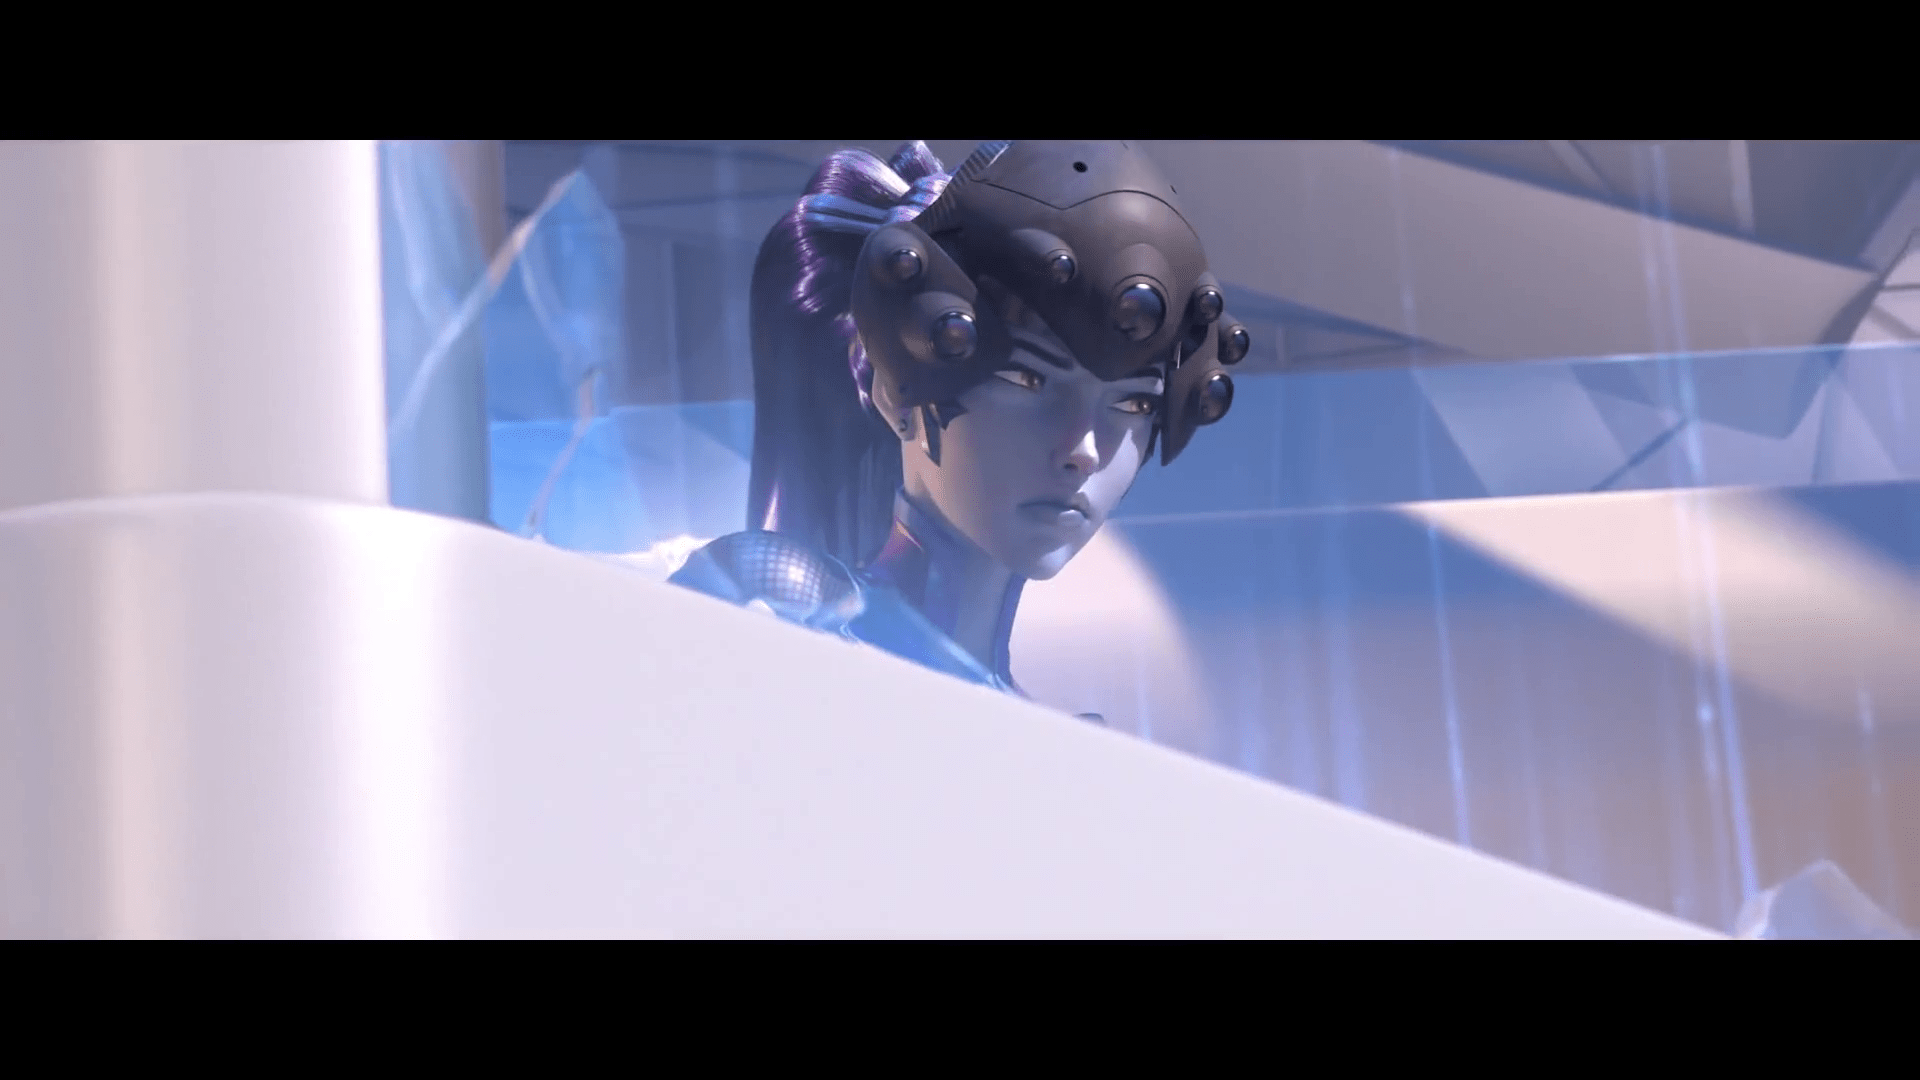 Iphone Wallpaper Quote Maker Overwatch Hd Wallpaper Background Image 1920x1080 Id